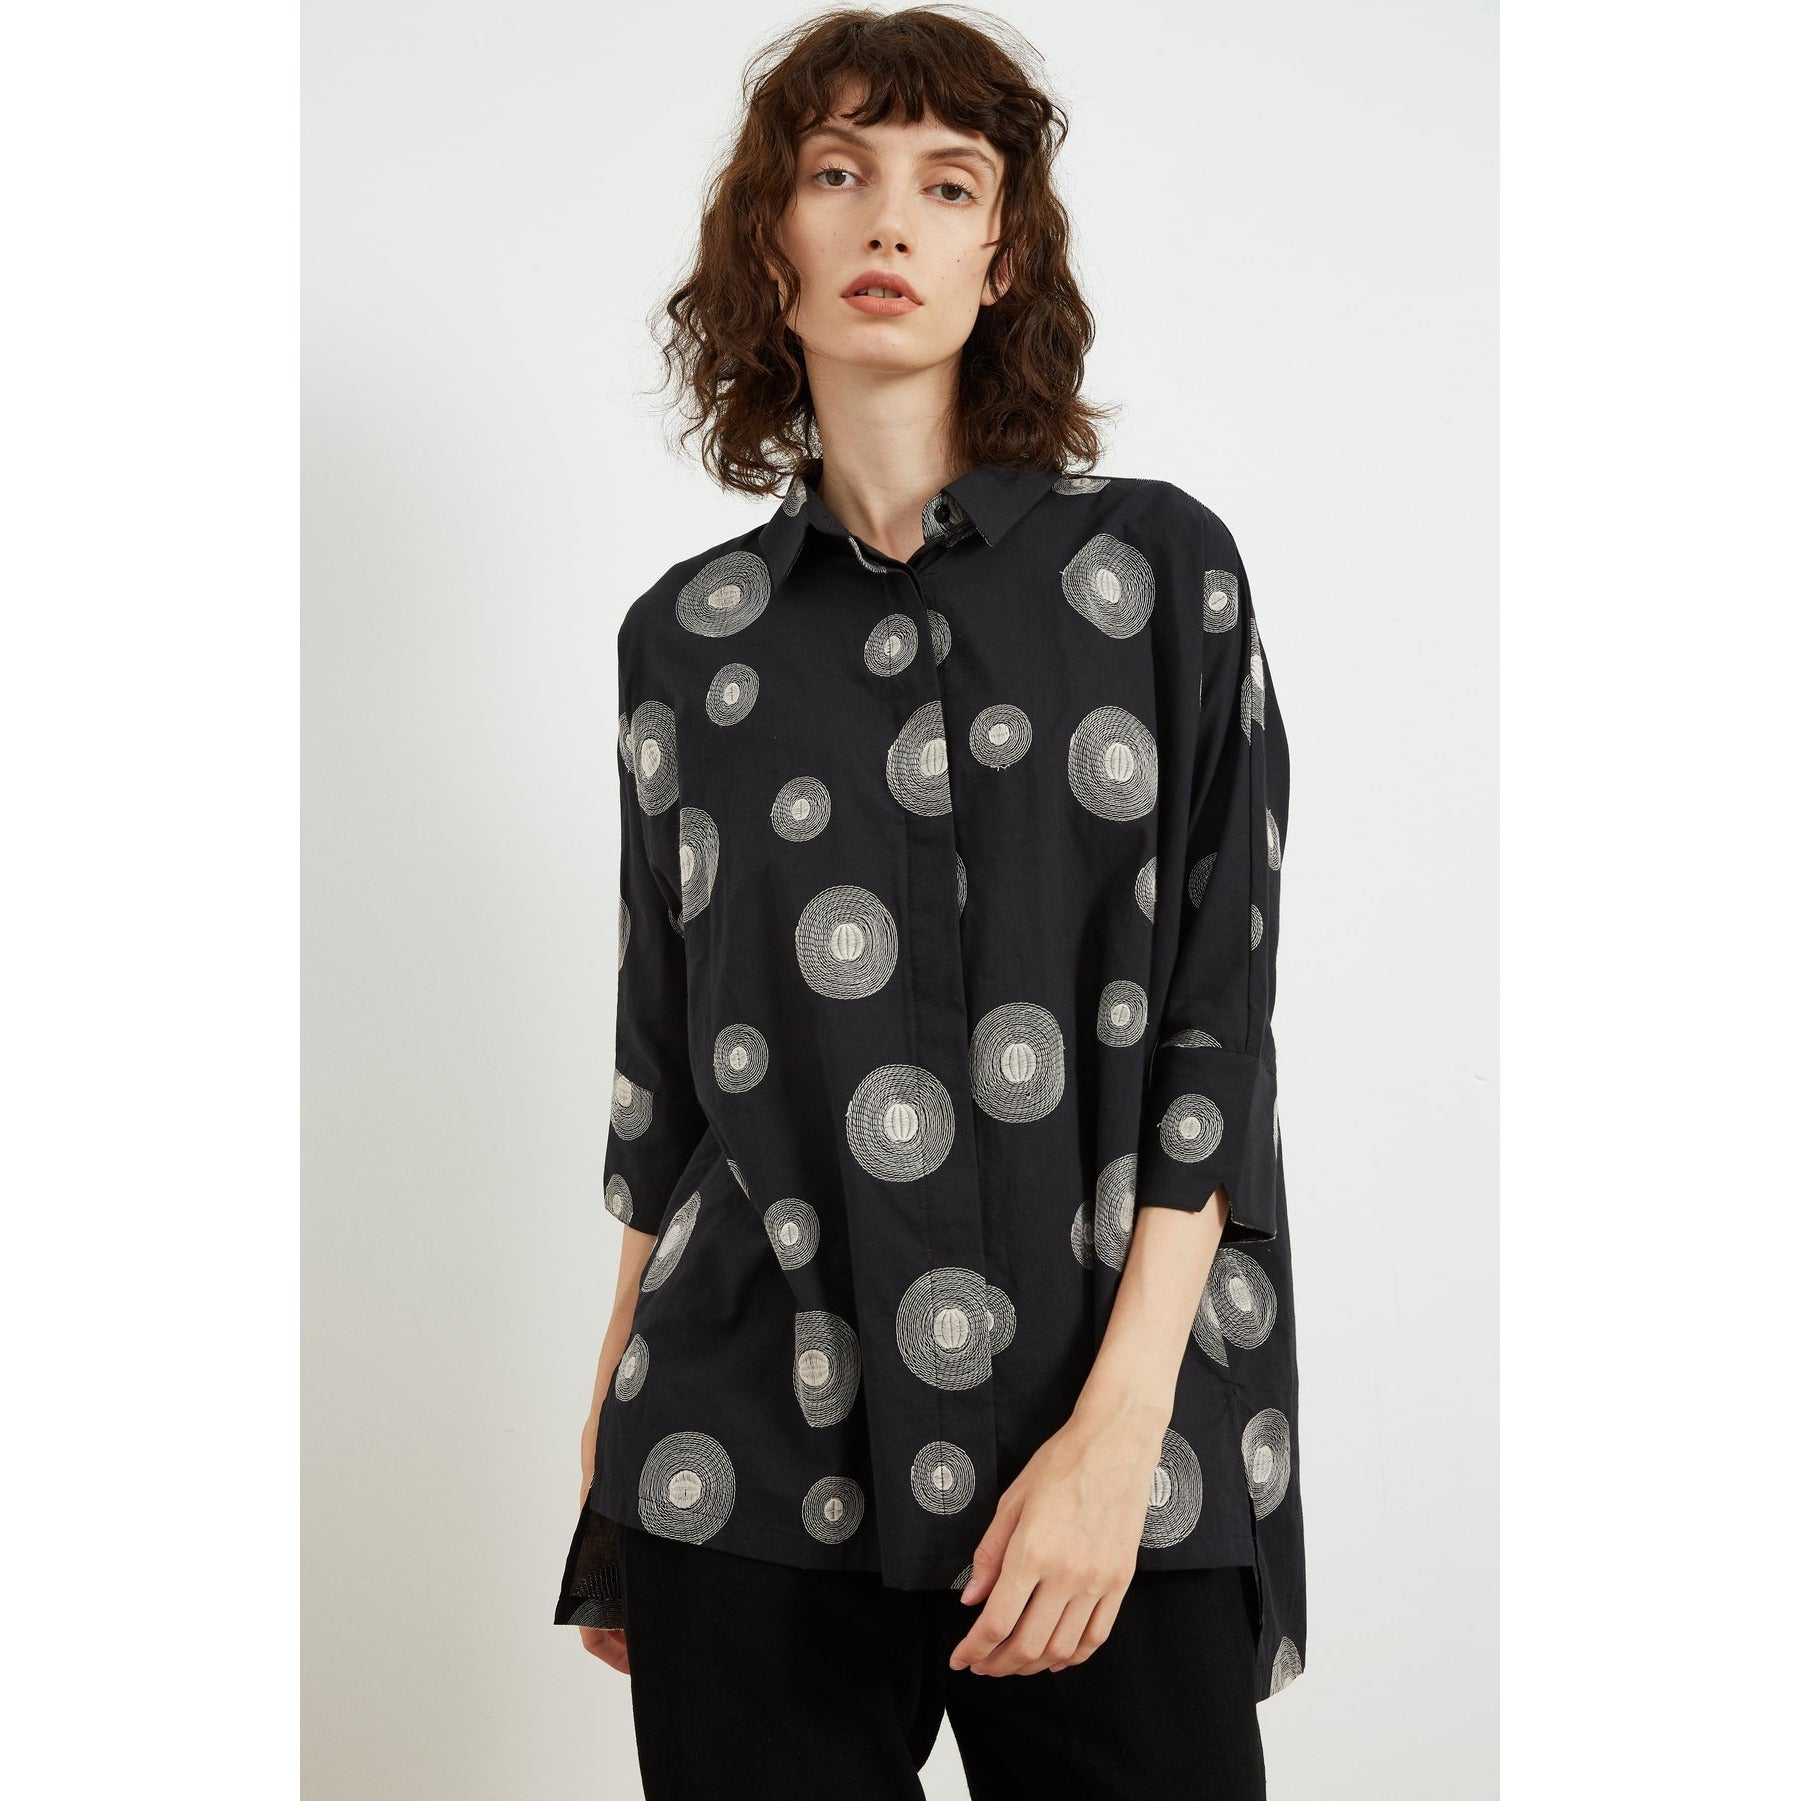 Tirelli Three Quarter sleeve Embroidered Shirt in Black beige